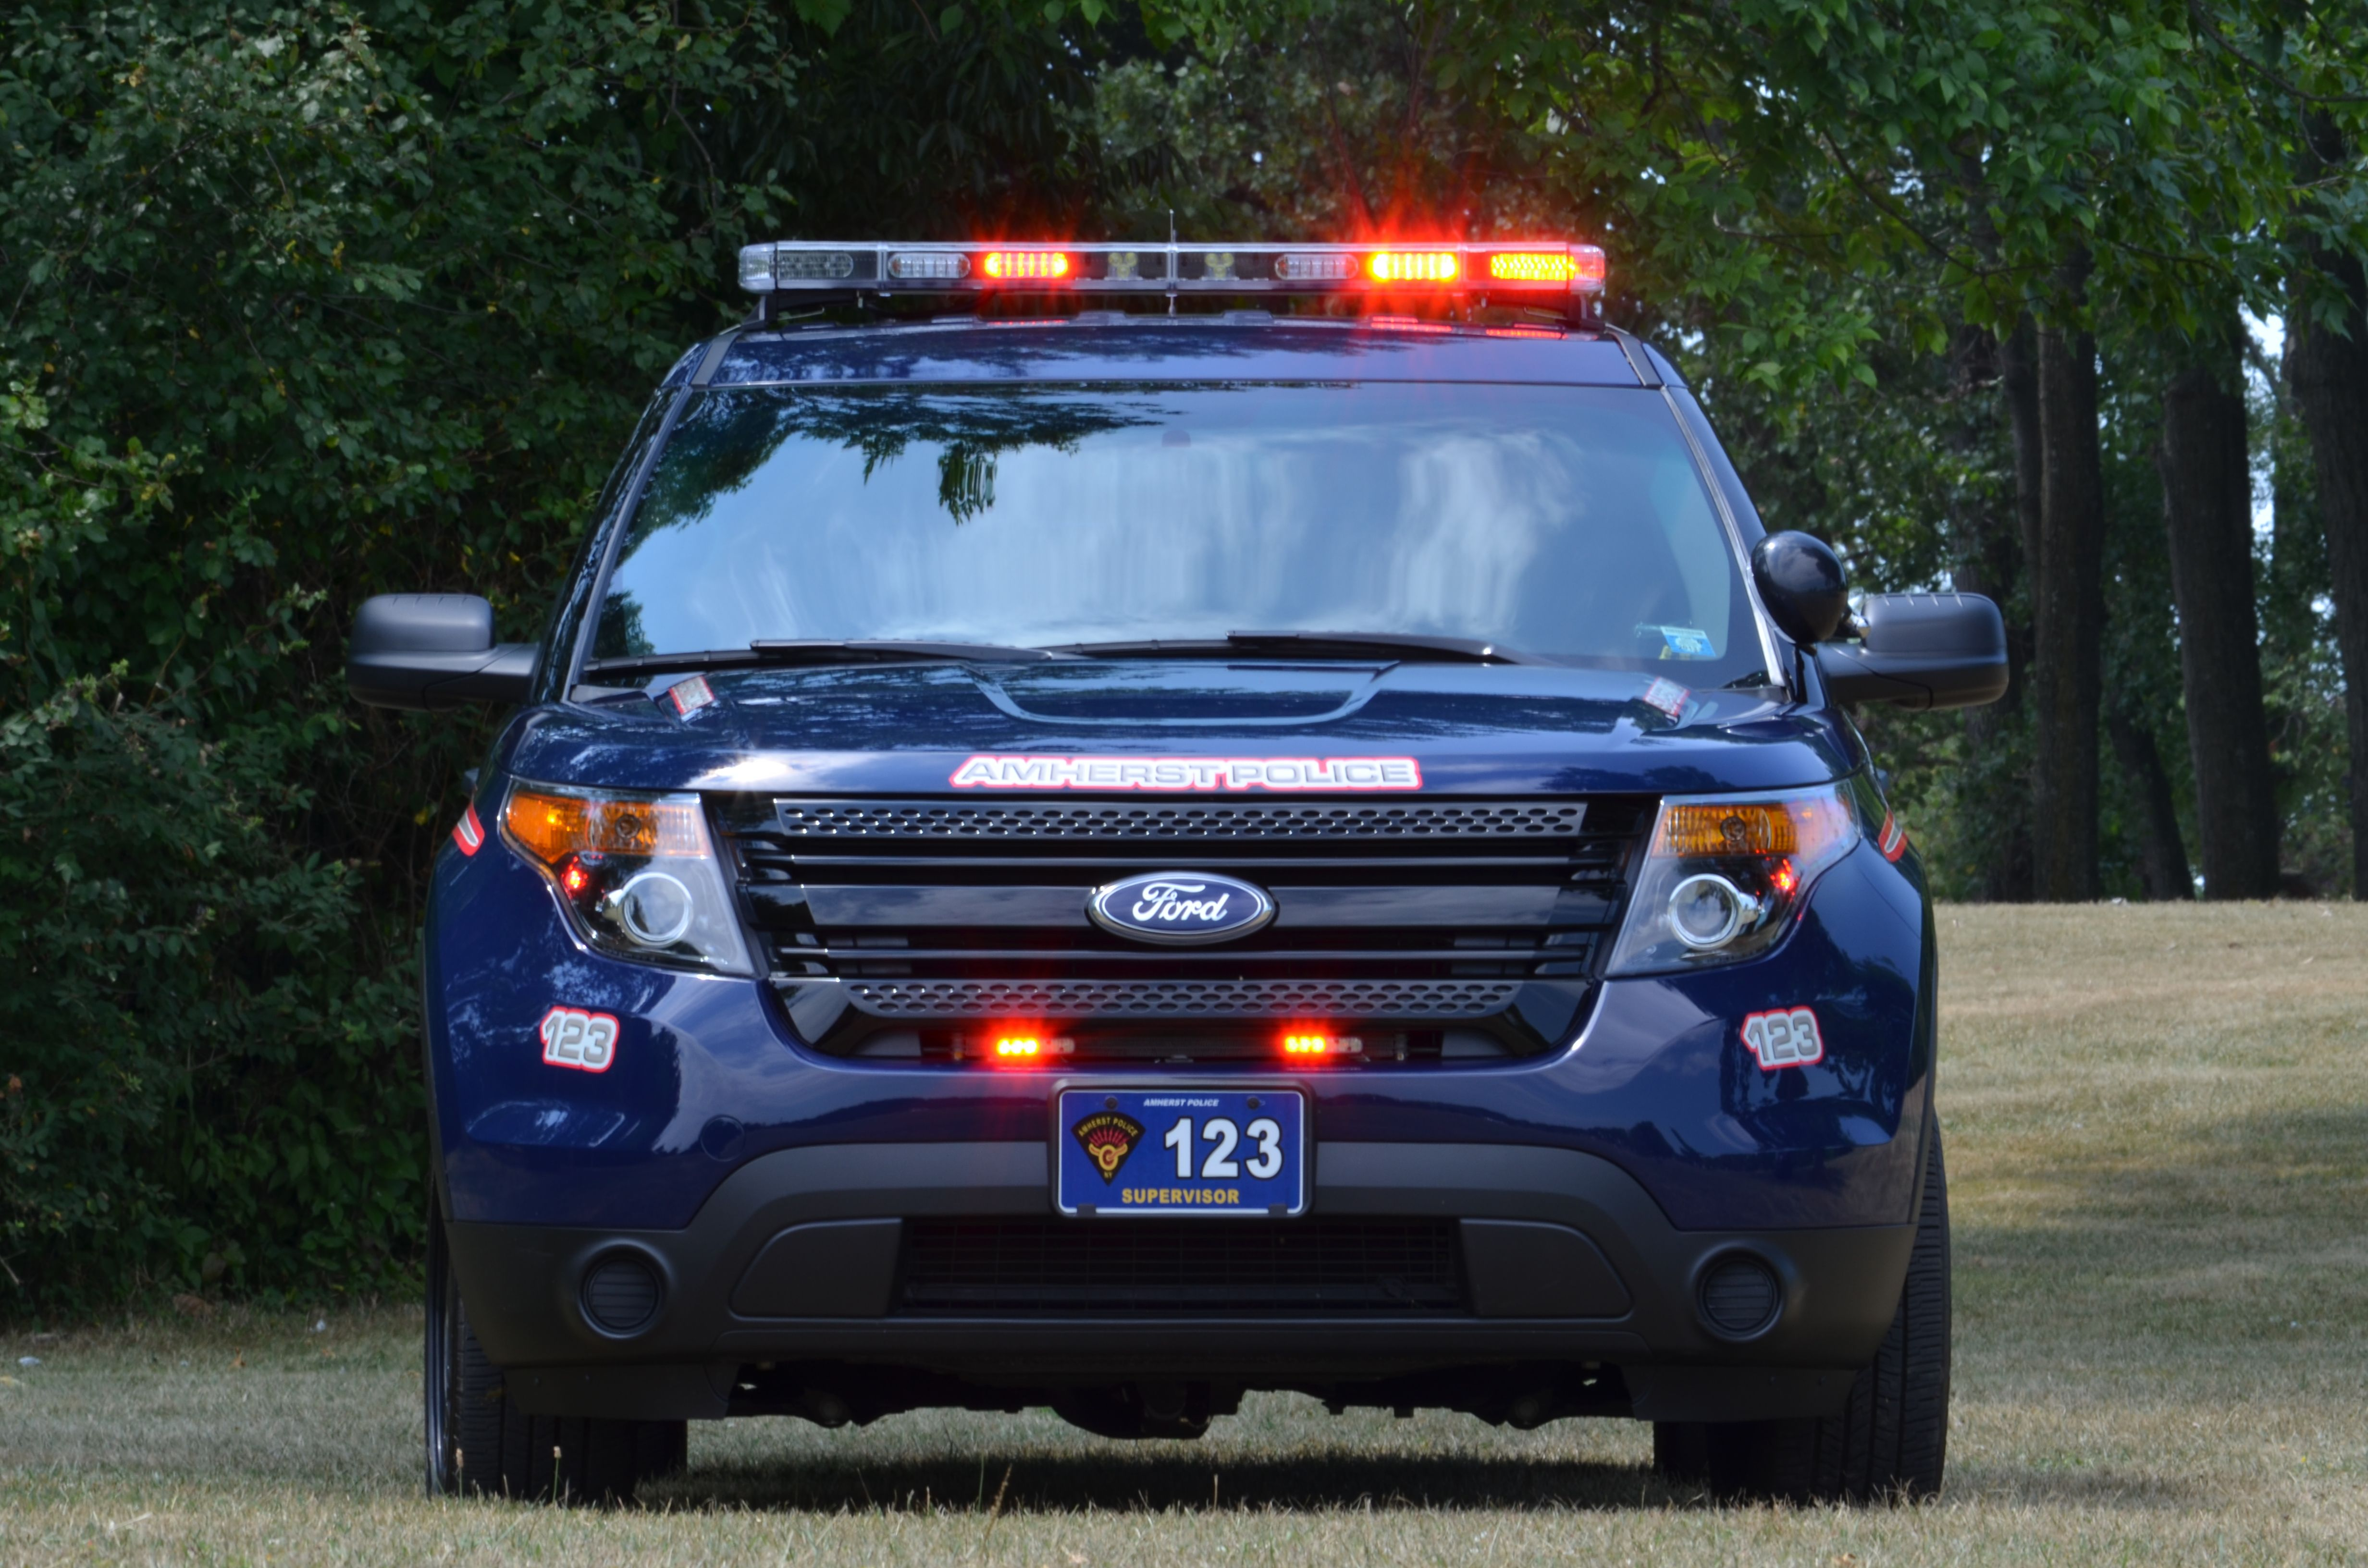 Amherst Police Car 123 Police Cars Ford Police Emergency Vehicles